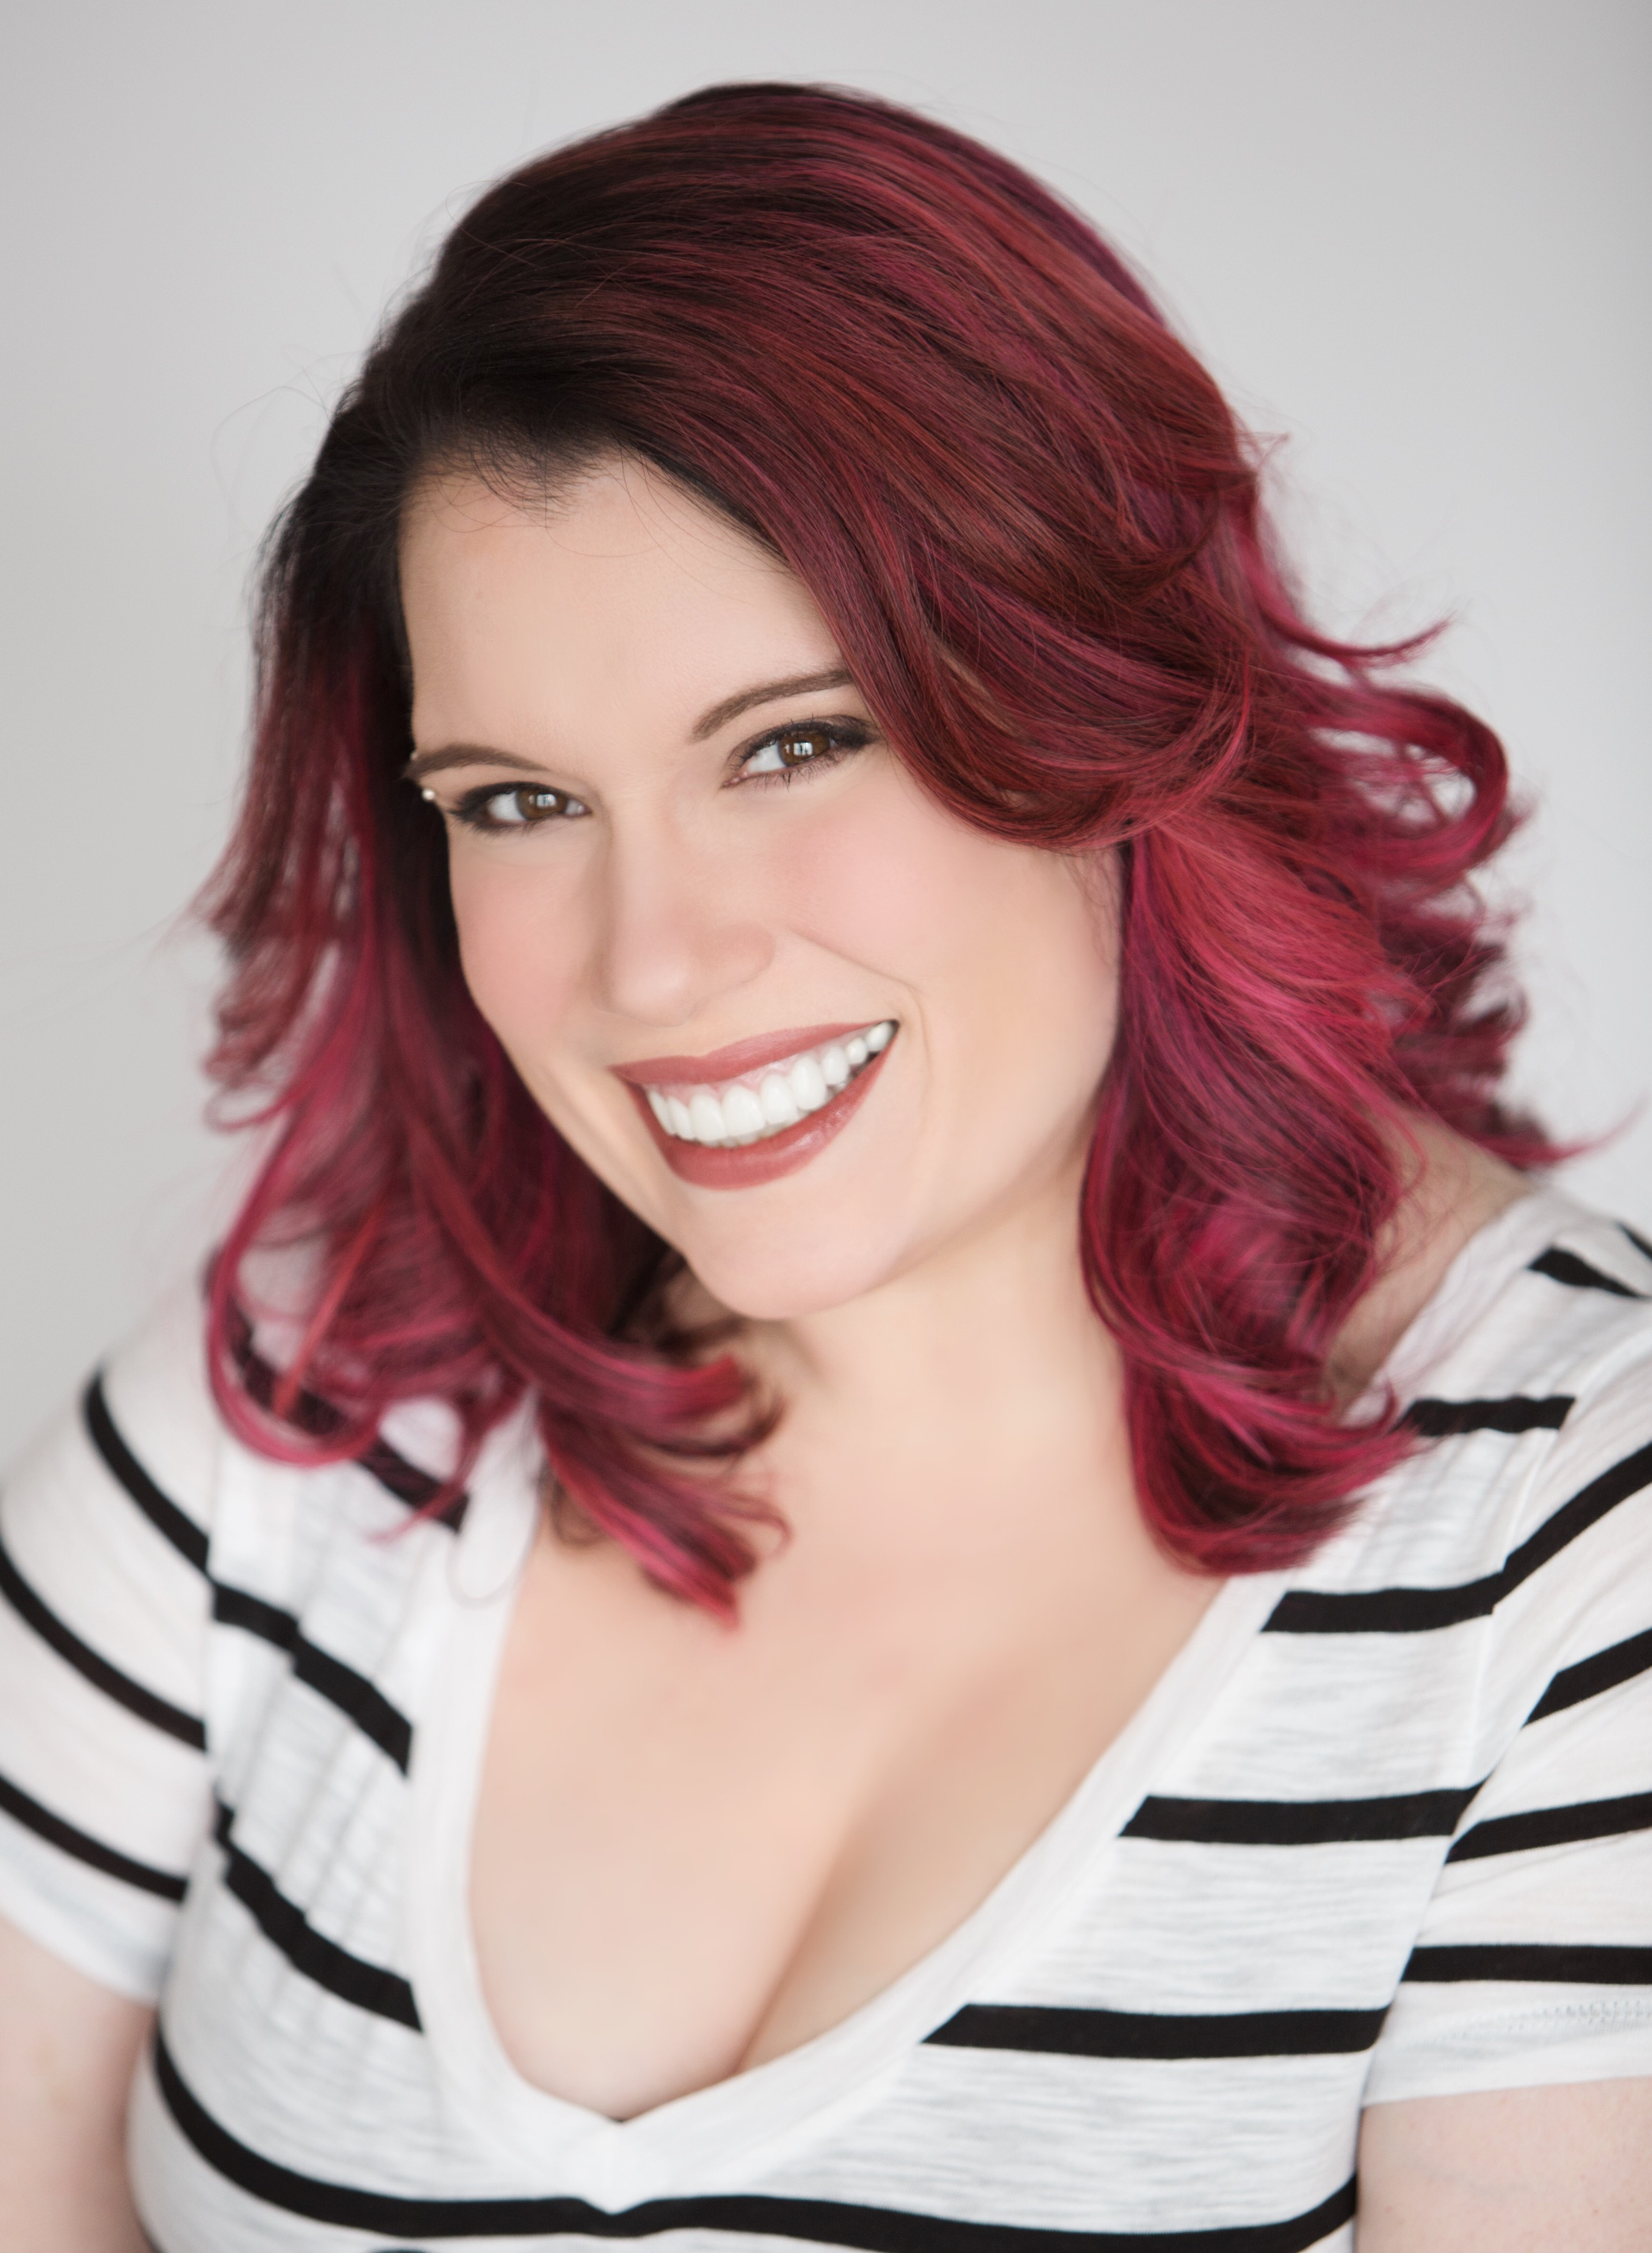 monica rial movies and tv shows